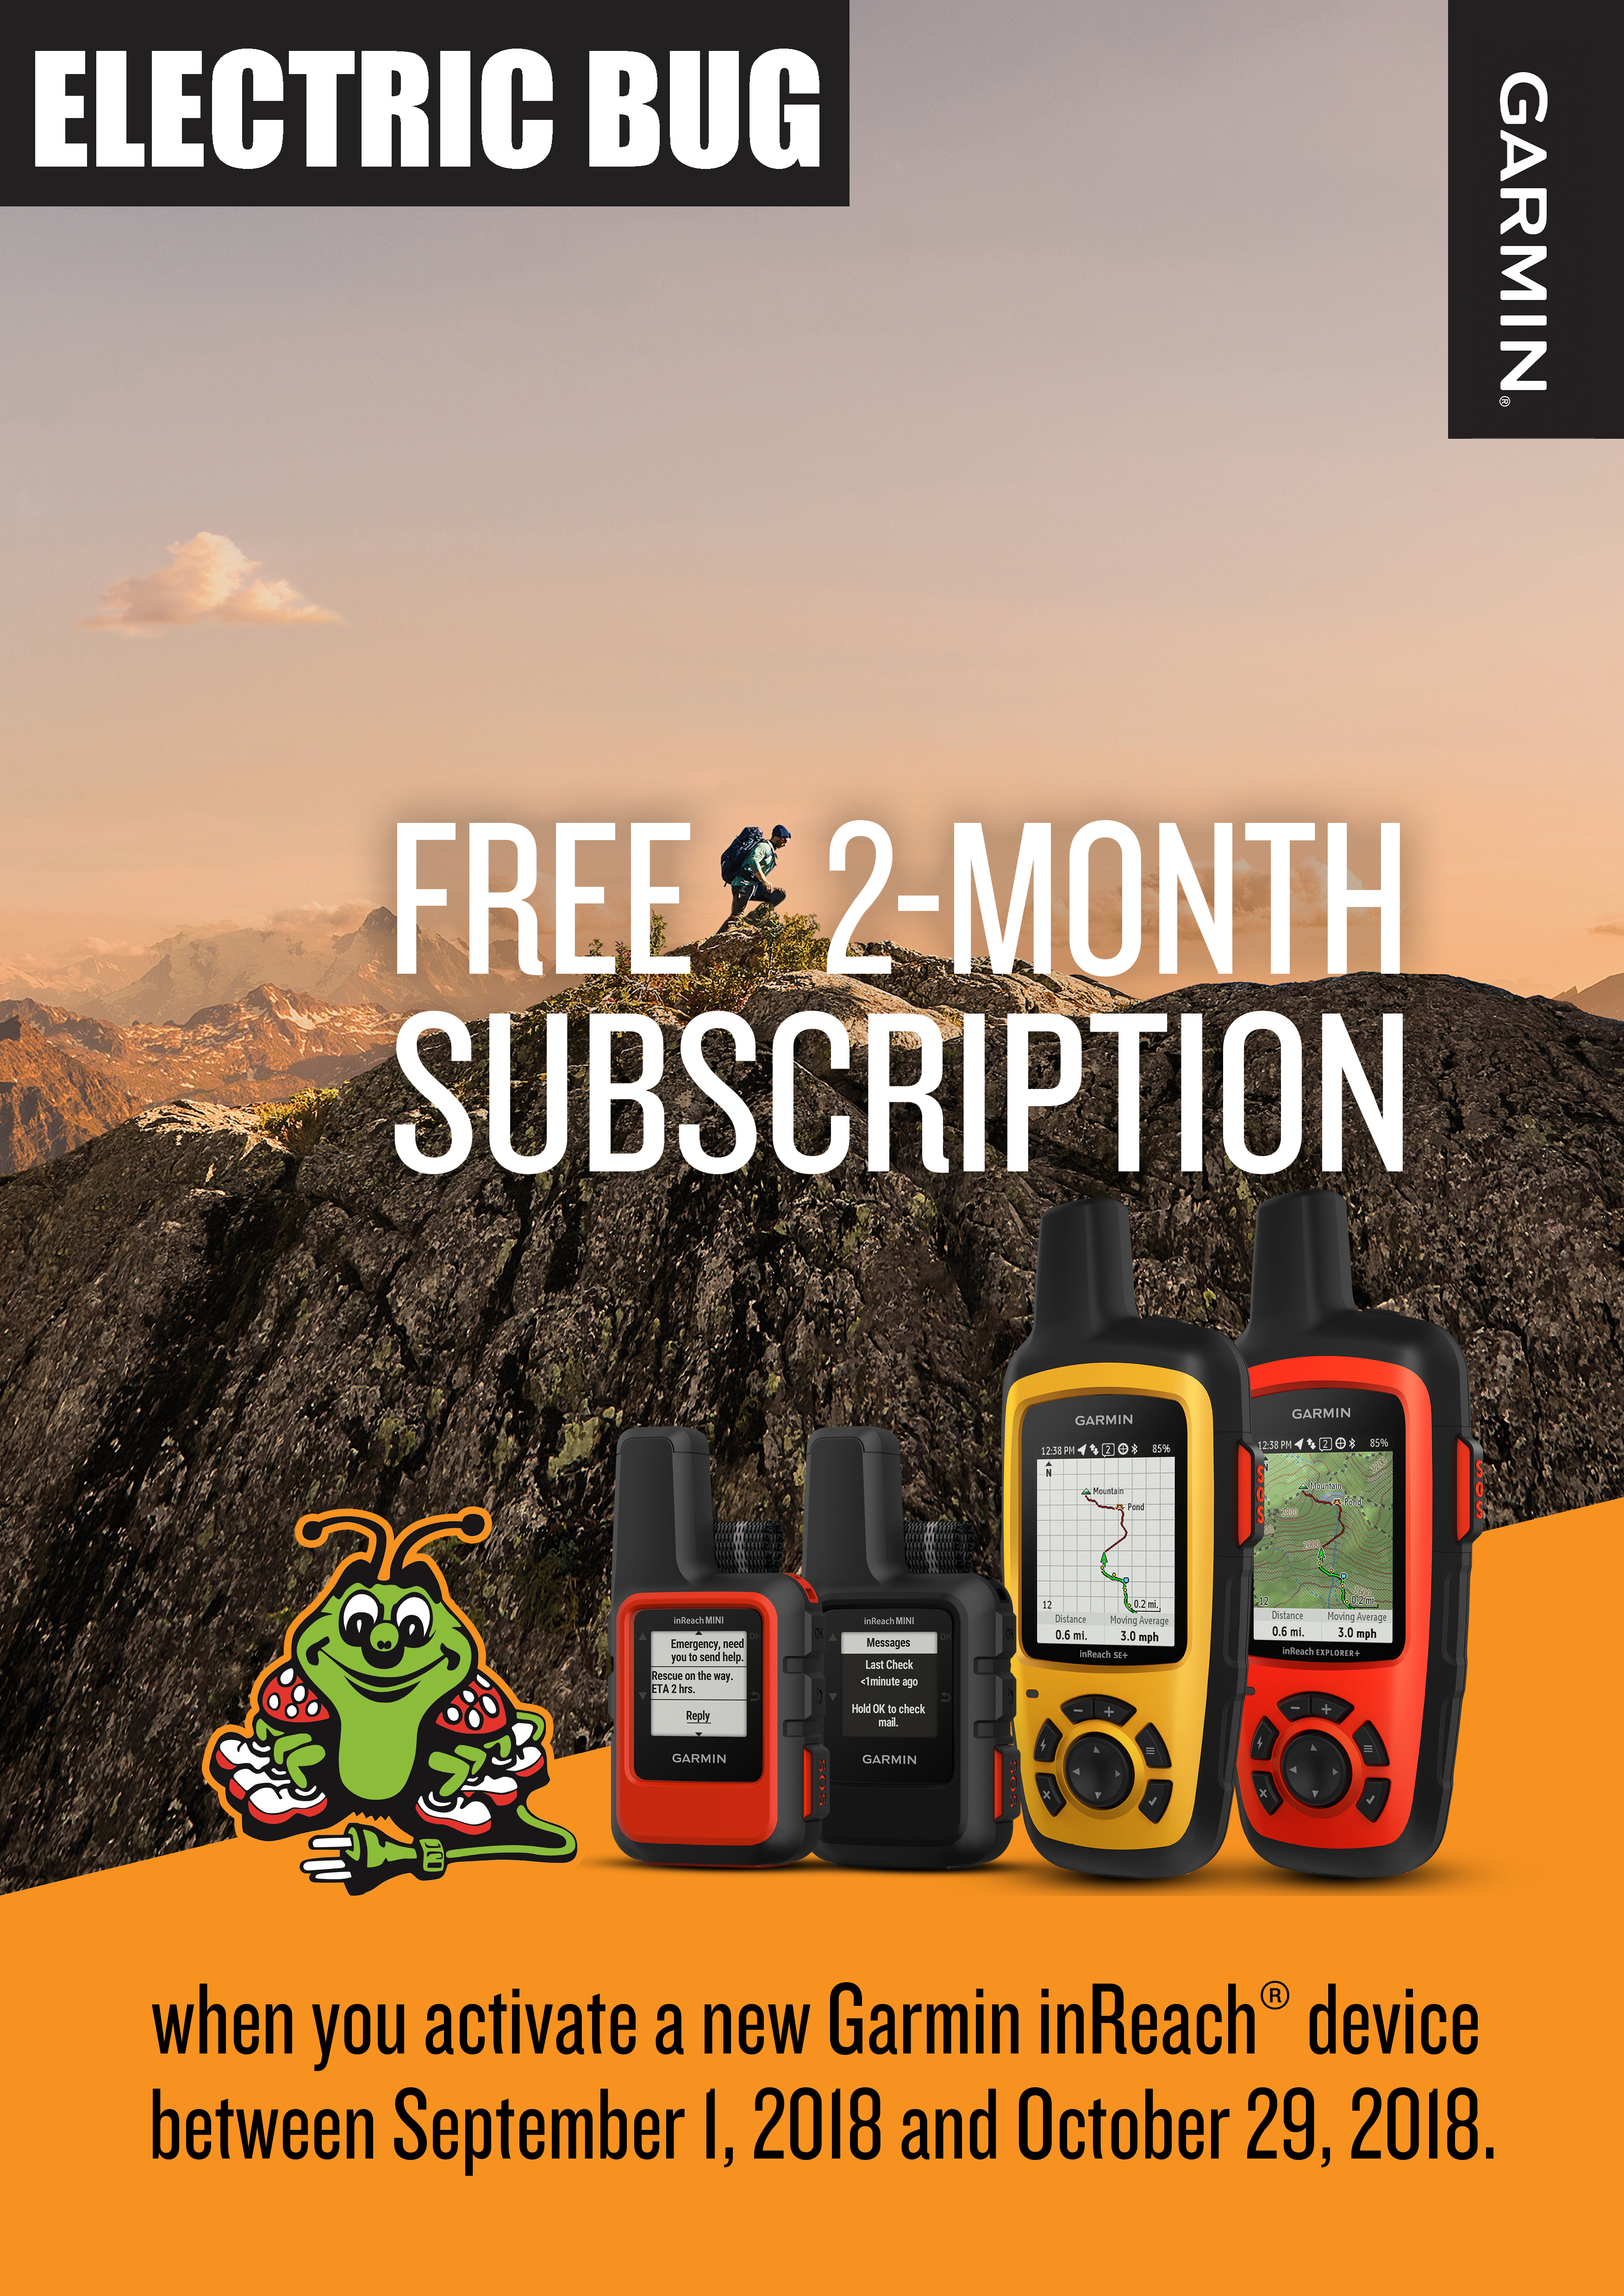 Garmin Giving More With The Inreach Electric Bug